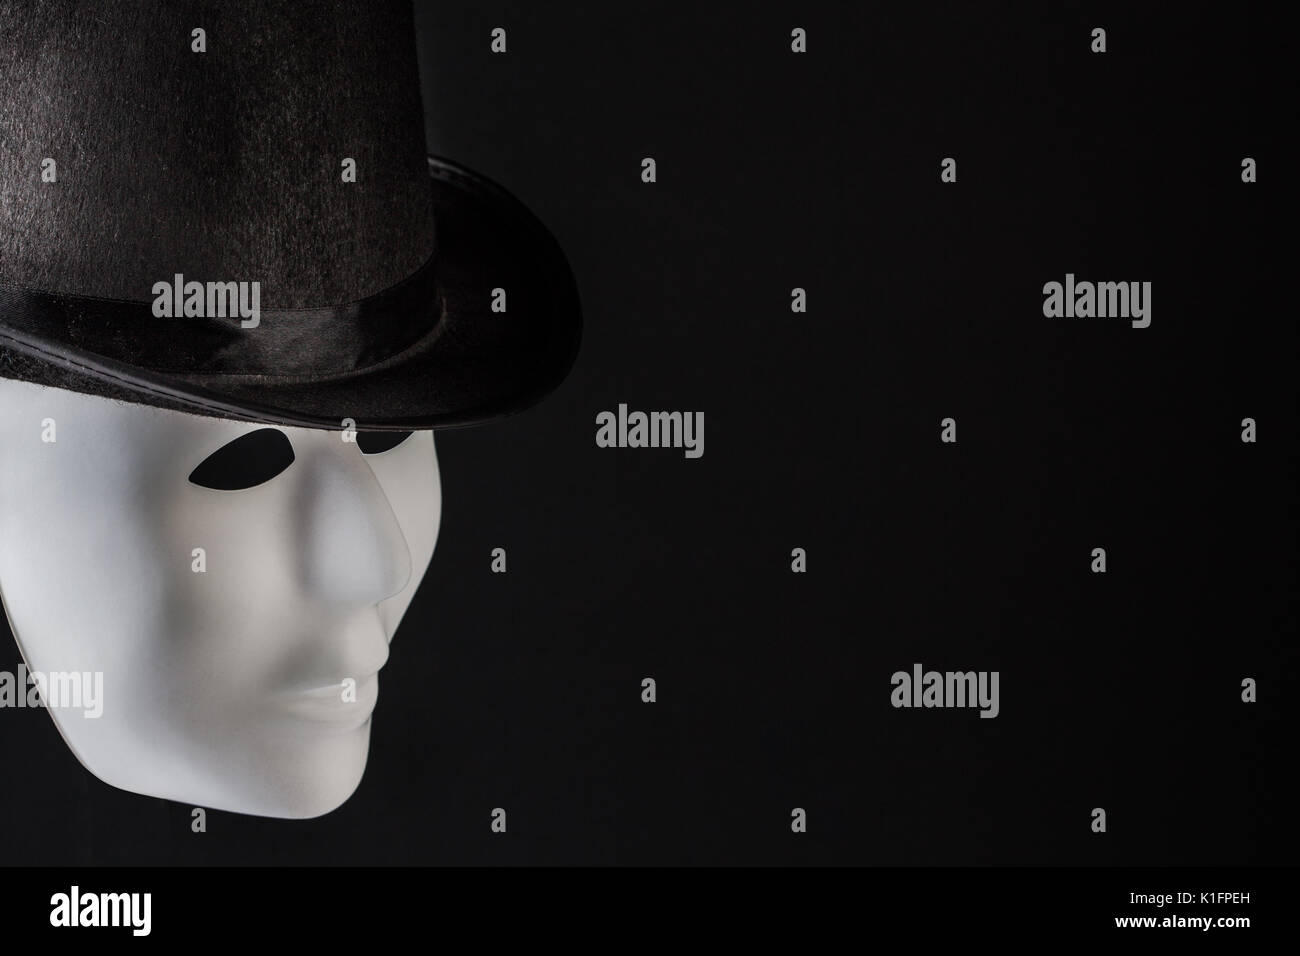 White mask profile wearing black top hat isolated on black background with copy space - Stock Image